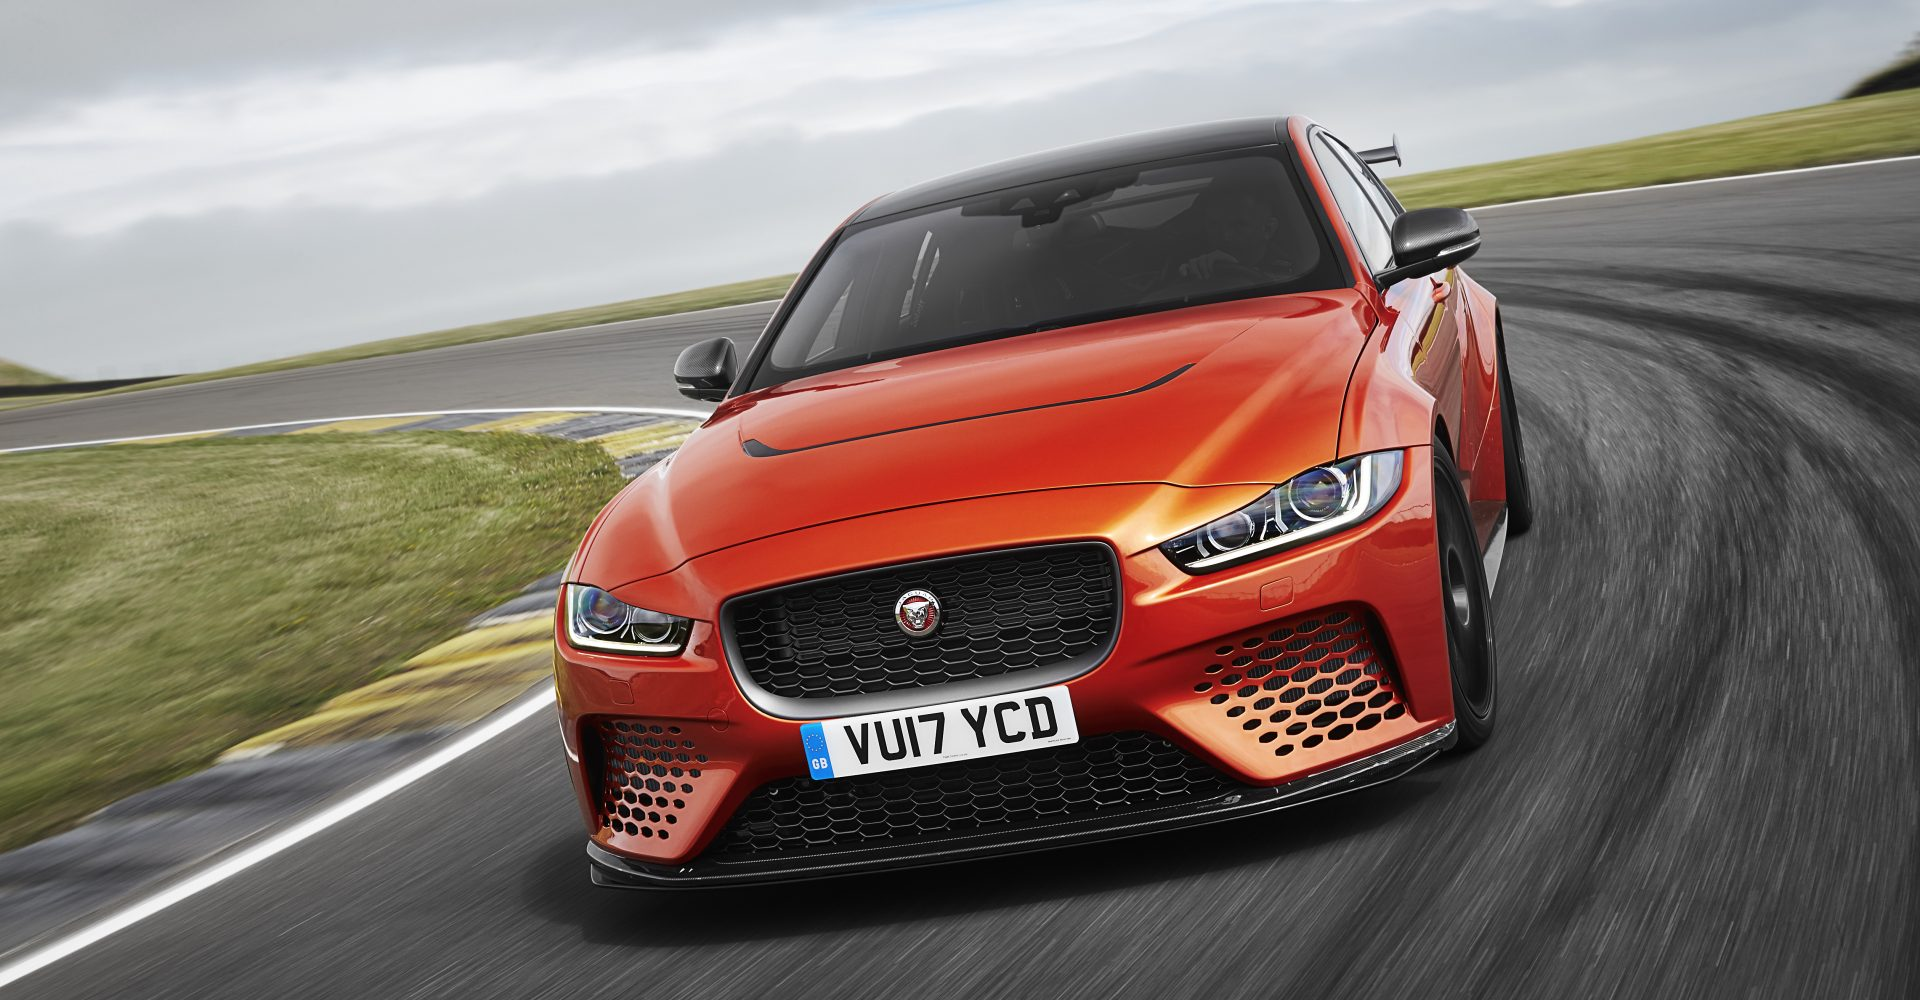 This Is What You'll Get For £150,000 From Jaguar's Special Vehicle Operations